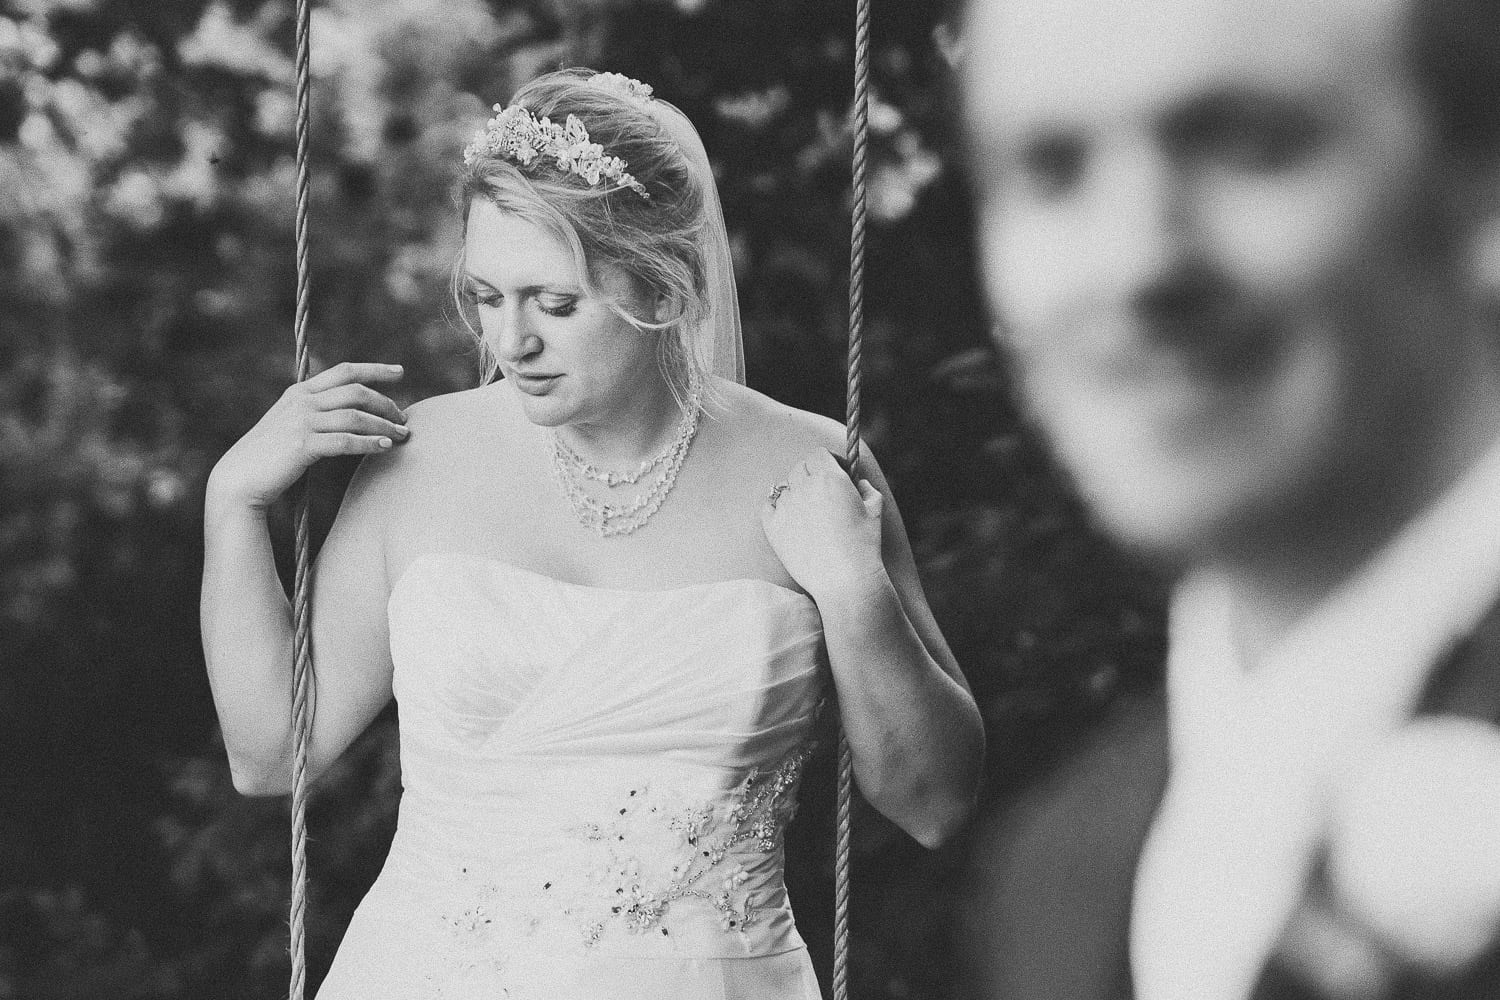 Bride stands on a swing while the groom looks on